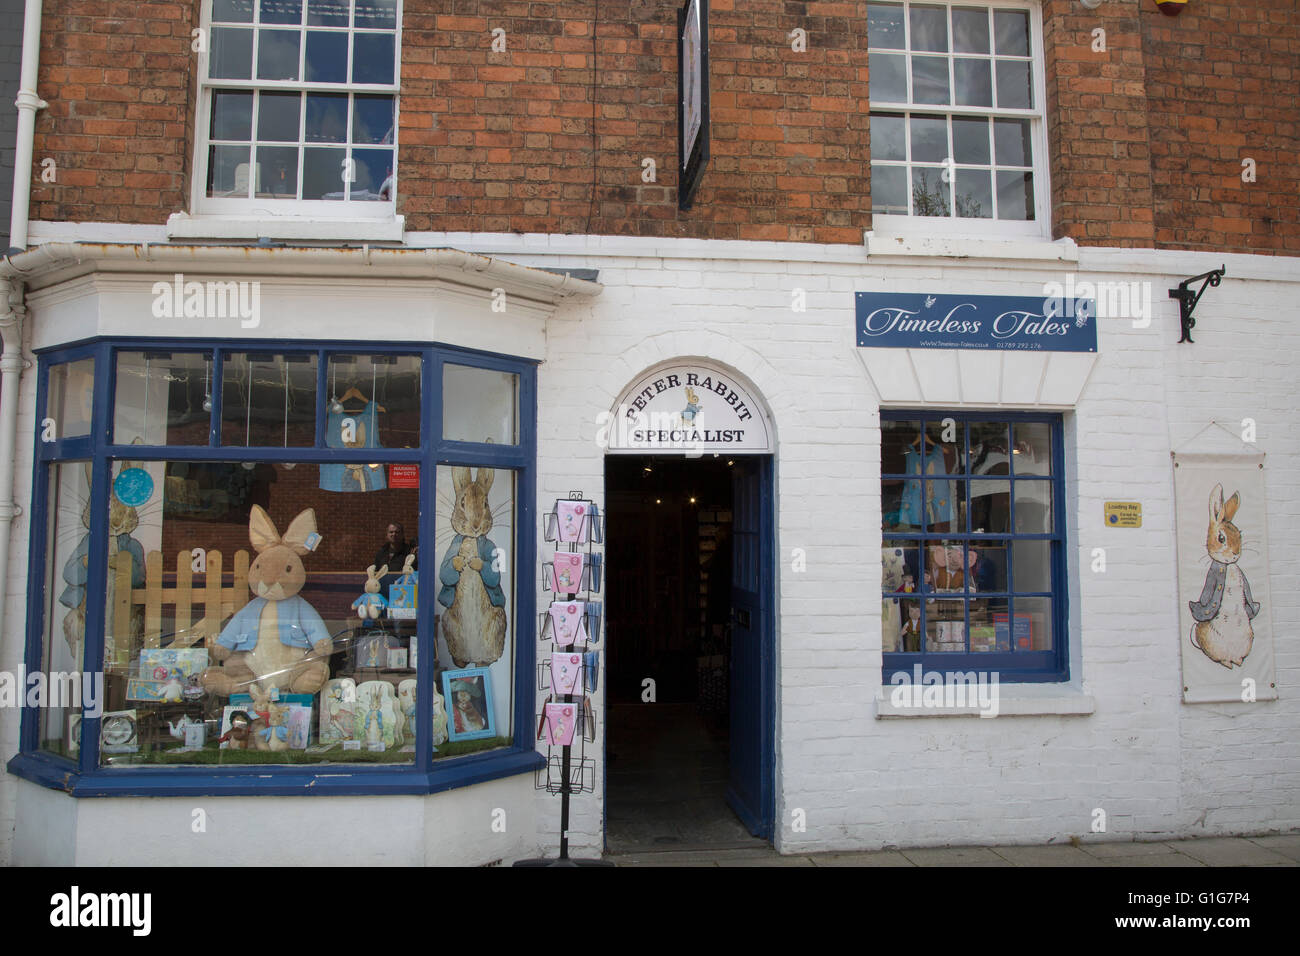 Timeless Tales, Henley Street, Stratford Upon Avon, England, UK - Stock Image